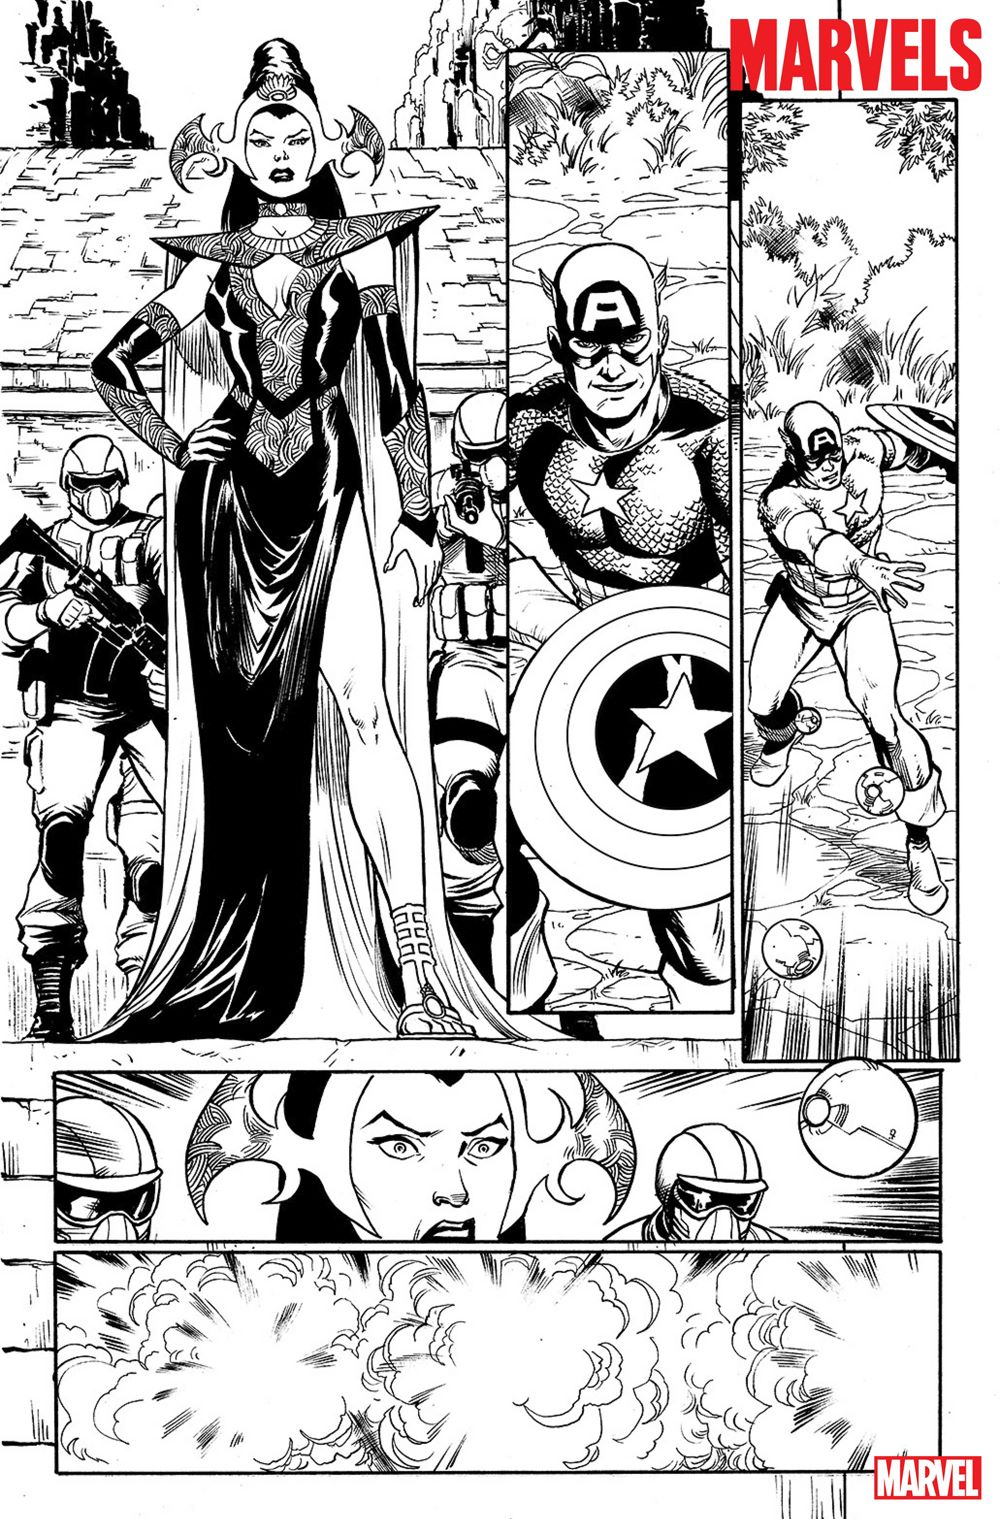 THE-MARVELS-Interior2 THE MARVELS gives Kurt Busiek full access to the Marvel Universe